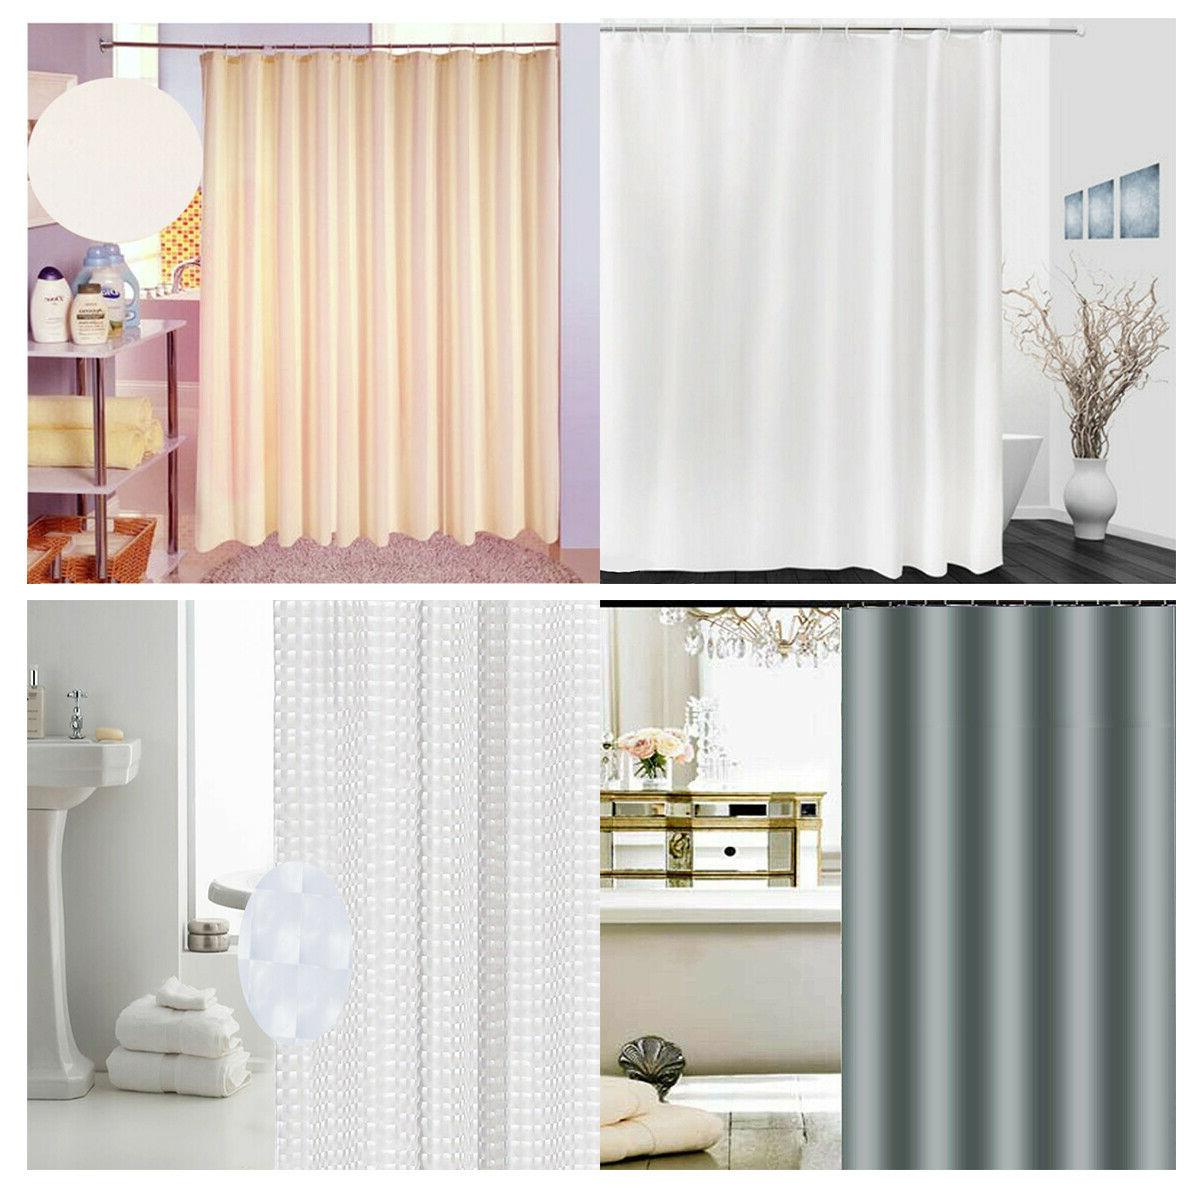 Fabric Shower Curtain Solid 72 x 72 for Bathroom Odorless